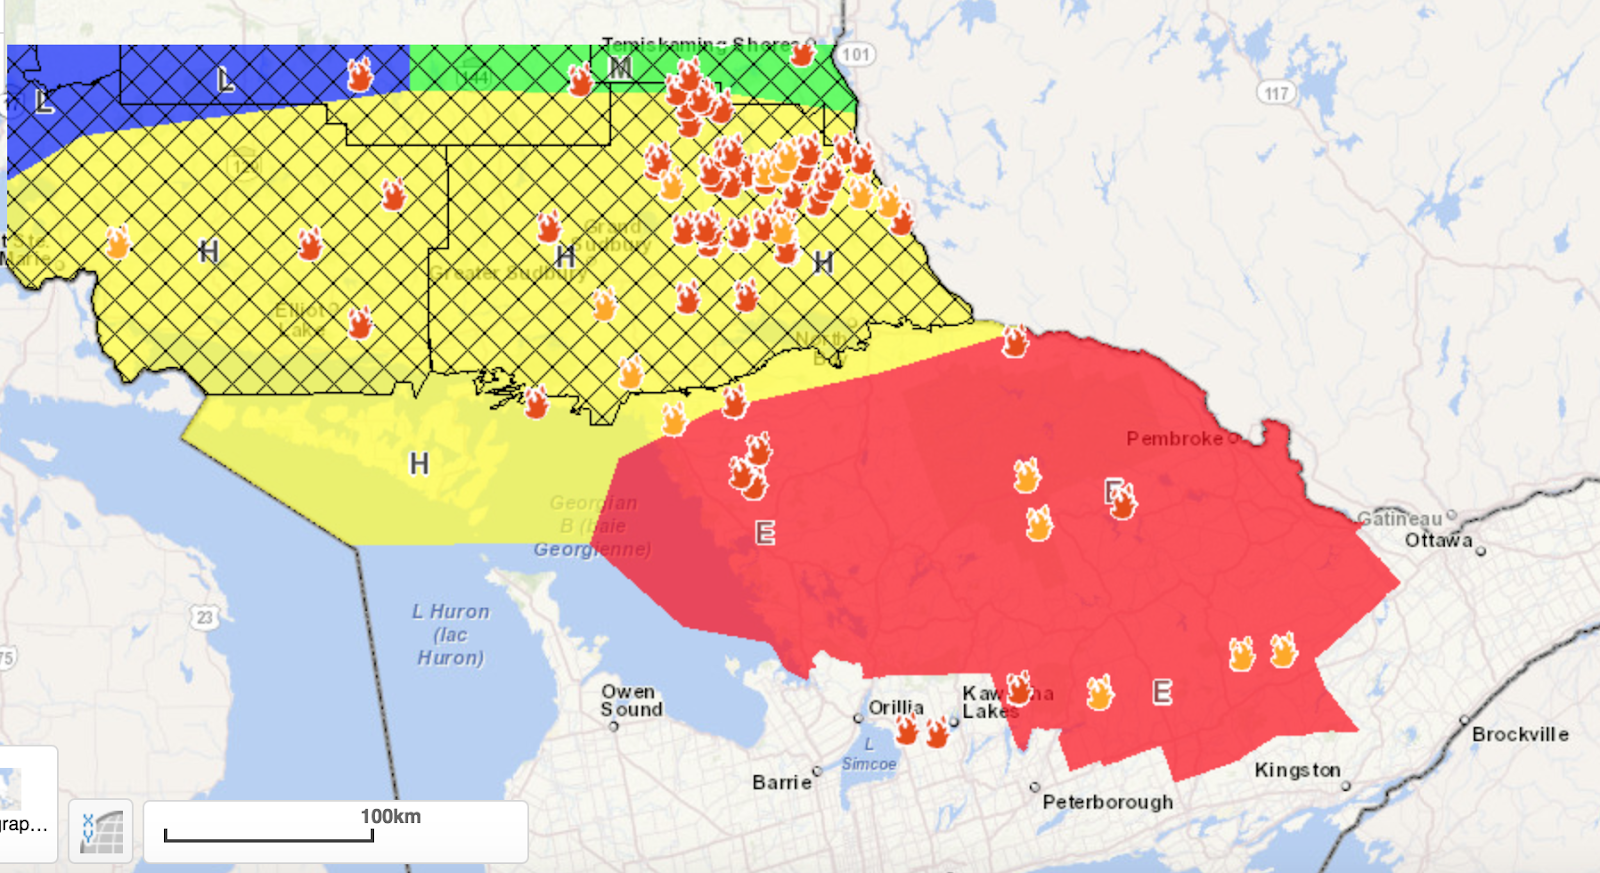 we only have a partial fire ban as we are on the south east edge of the red